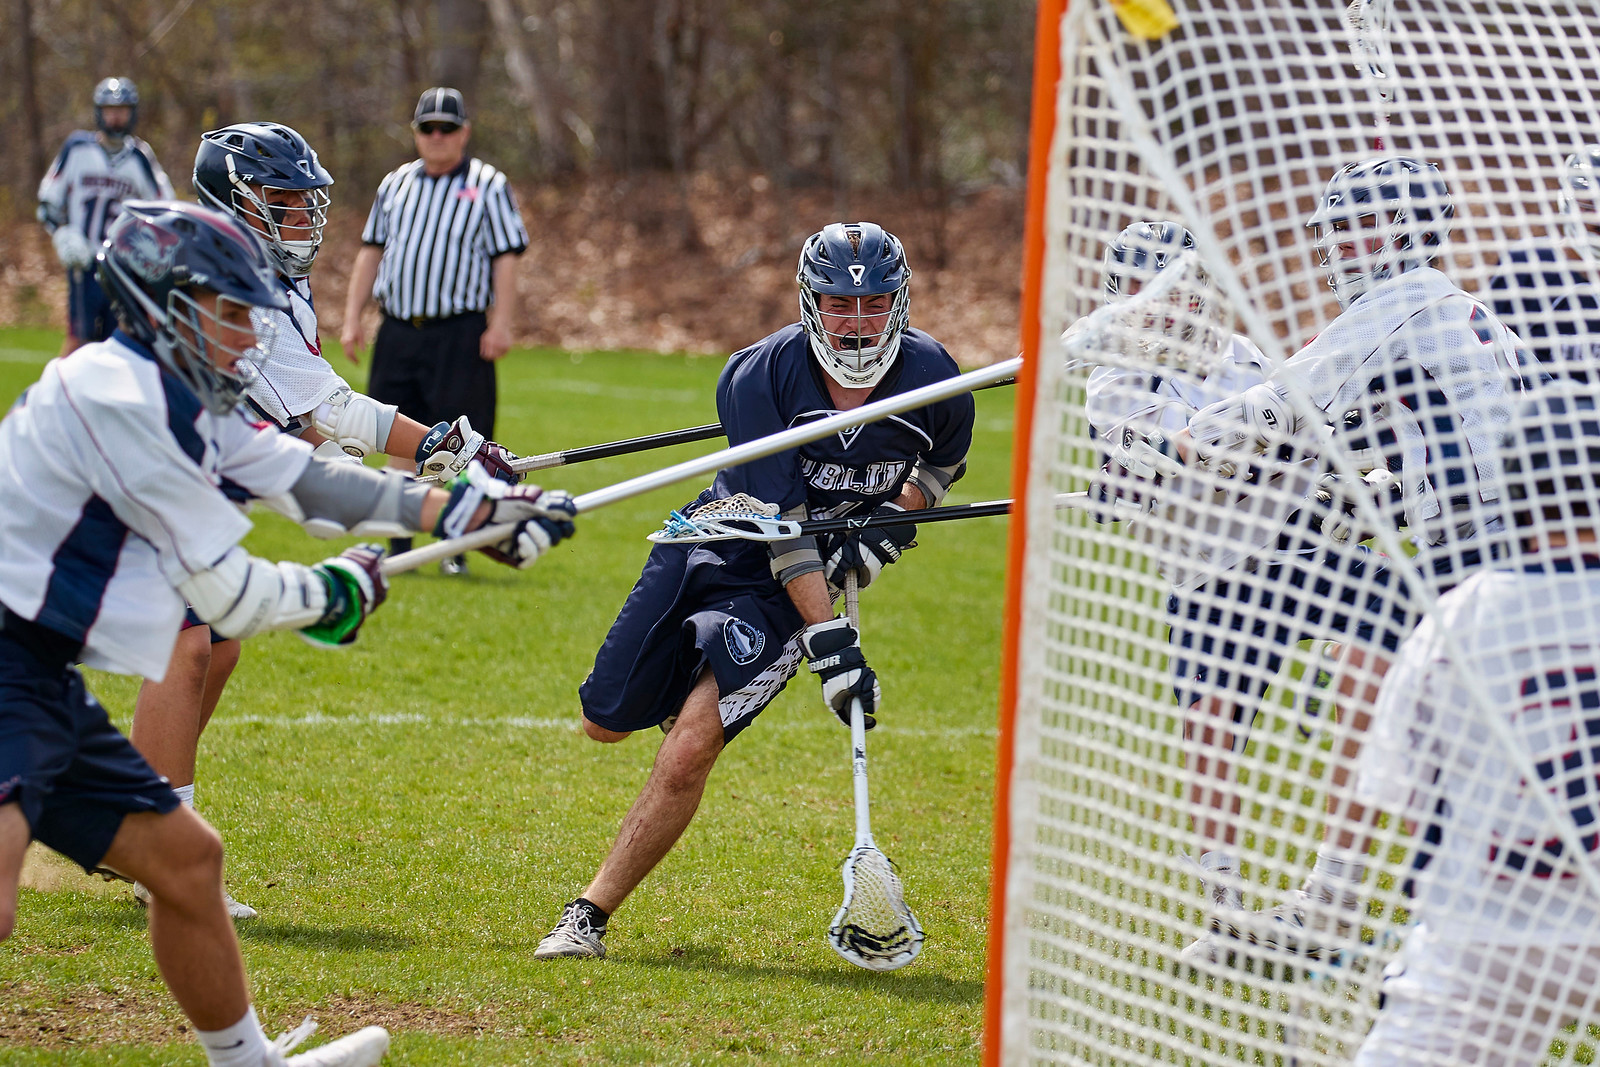 Boys Lacrosse vs. Brewster Academy - April 29, 2017 - 4.19.2017 - 061-X3.jpg